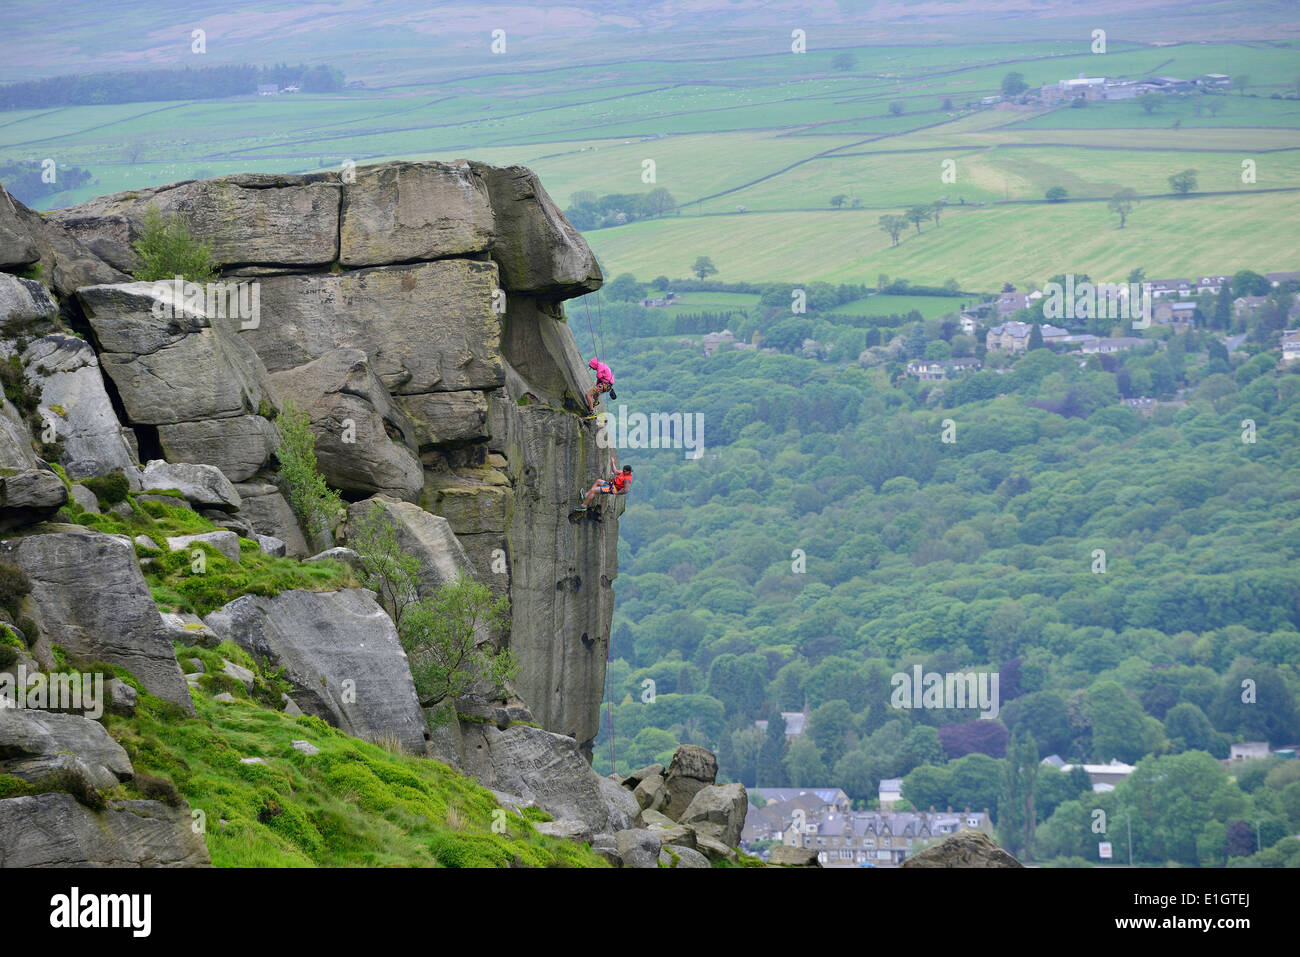 Abseiling down the Cow and Calf rock face on Ilkley Moor West Yorkshire England UK - Stock Image